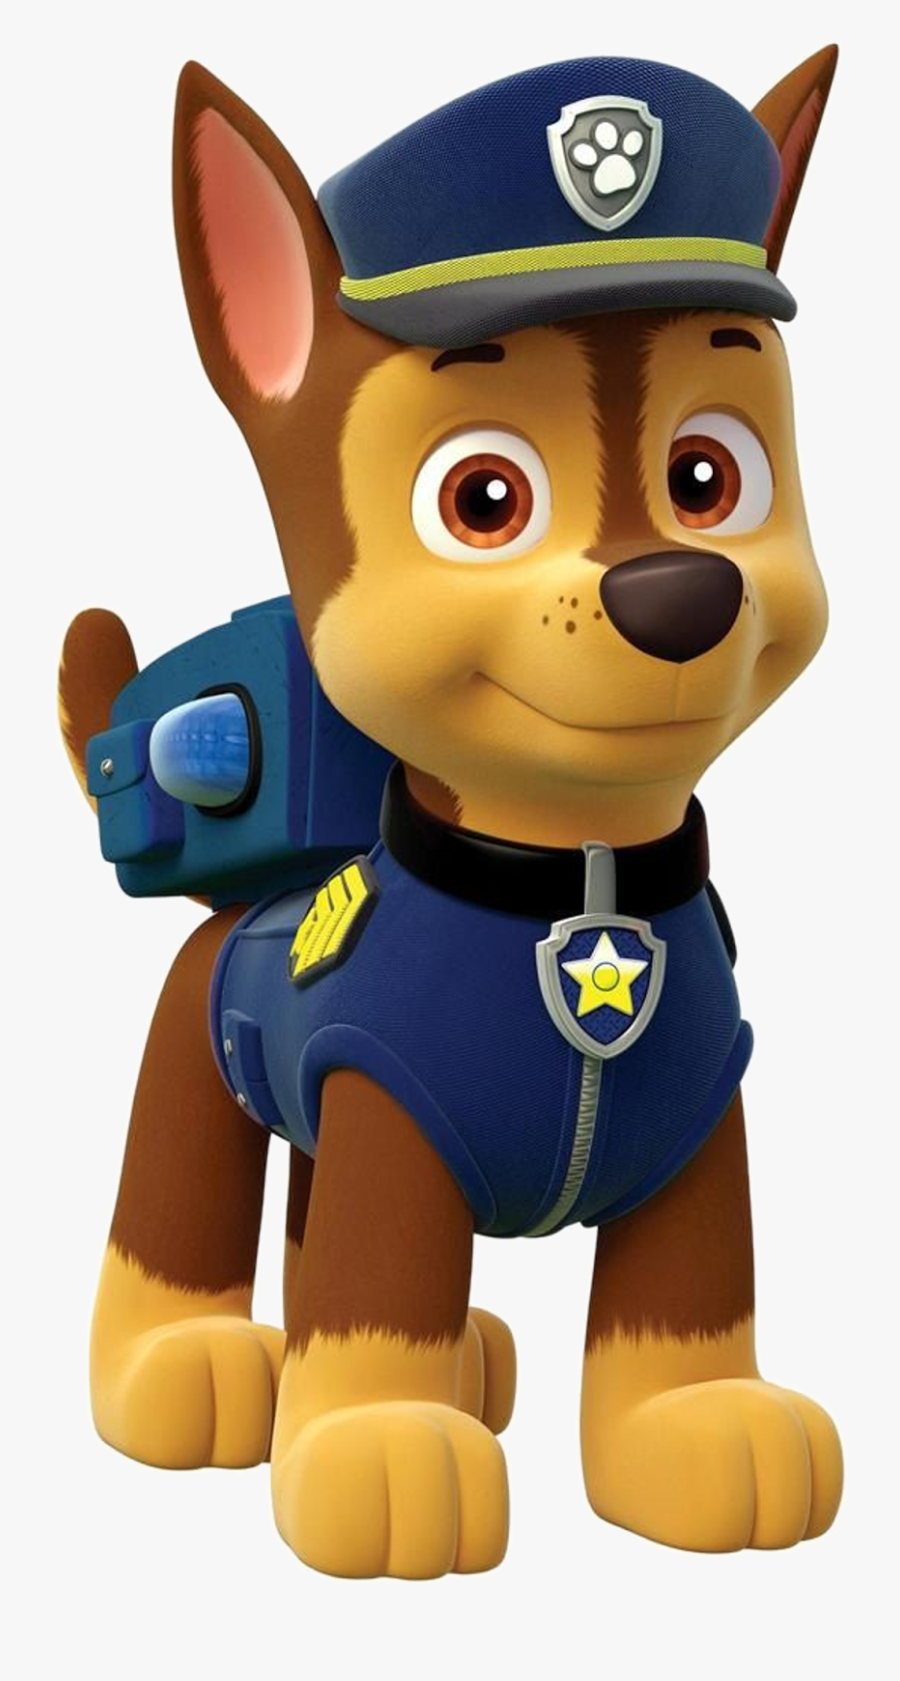 Chase Paw Patrol Clipart Png - Chase Dog Paw Patrol, Transparent Clipart